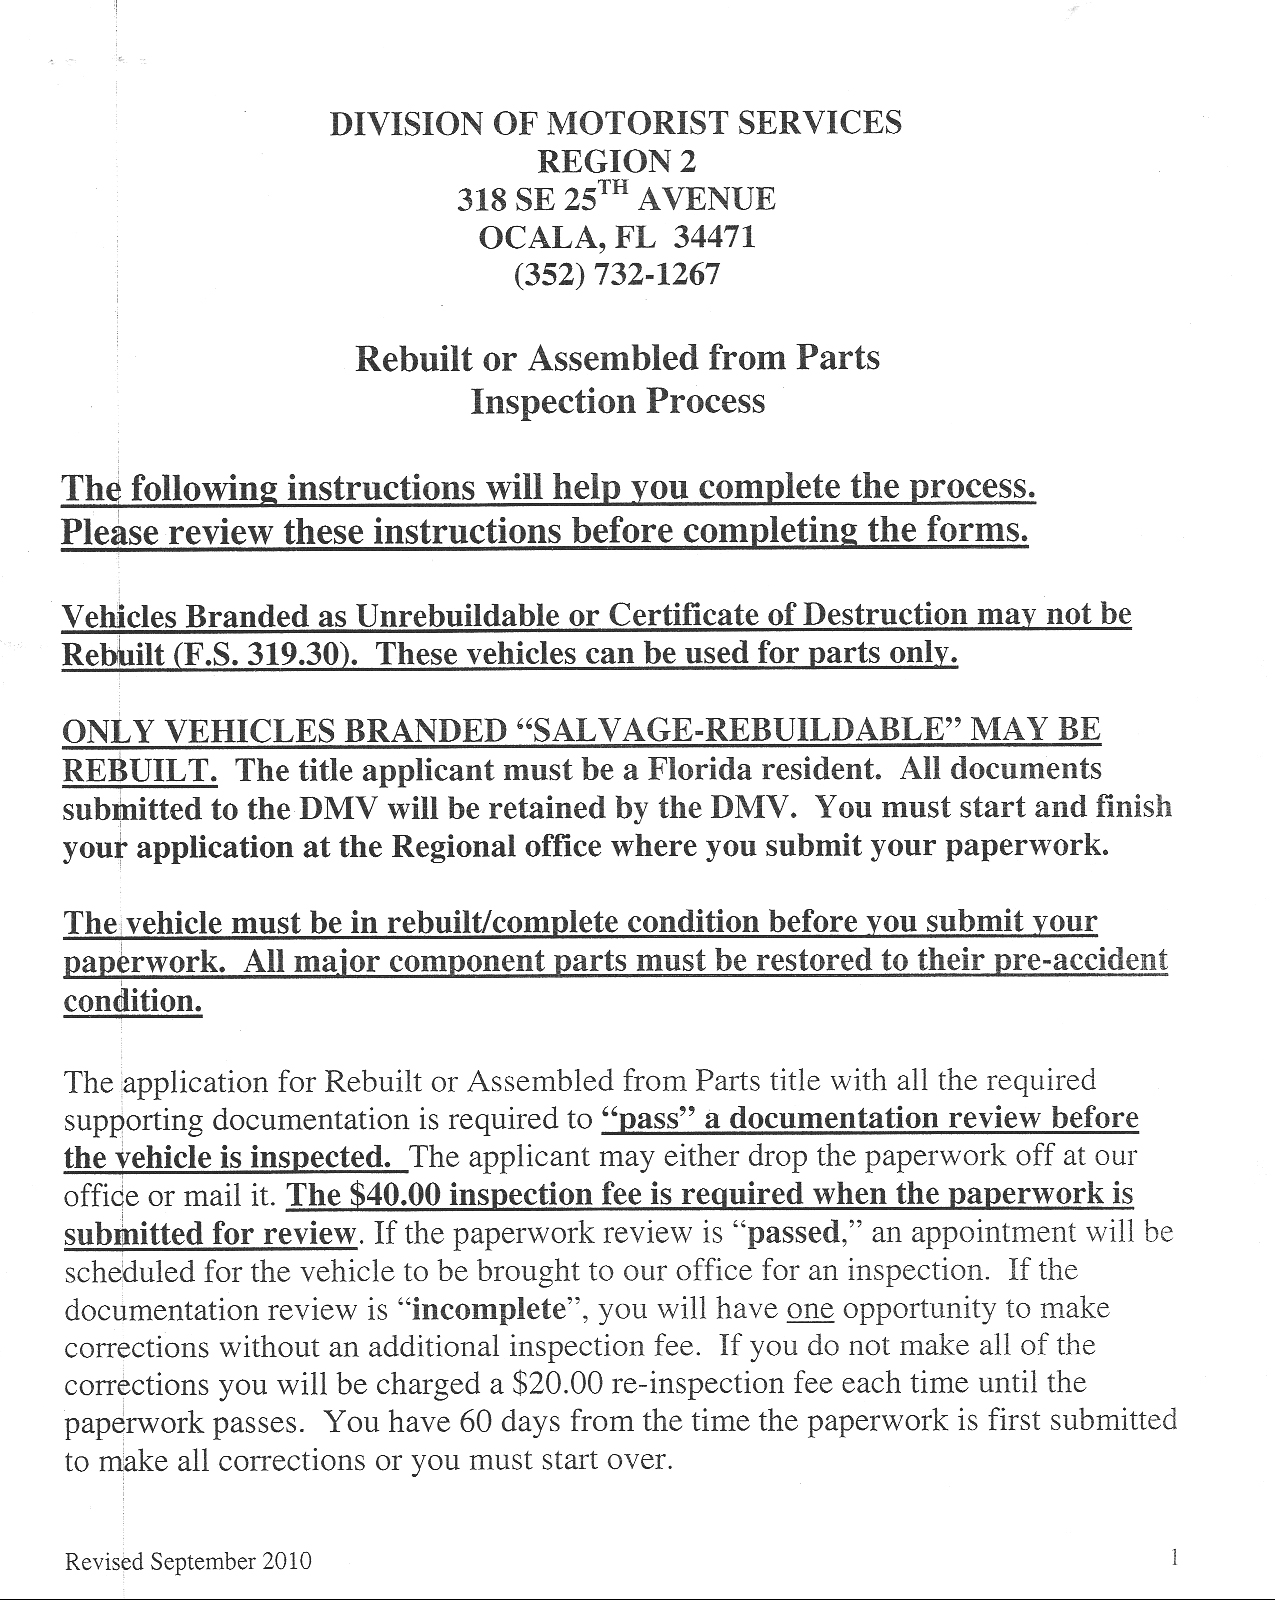 Florida DMV special construction pamphlet two, page one